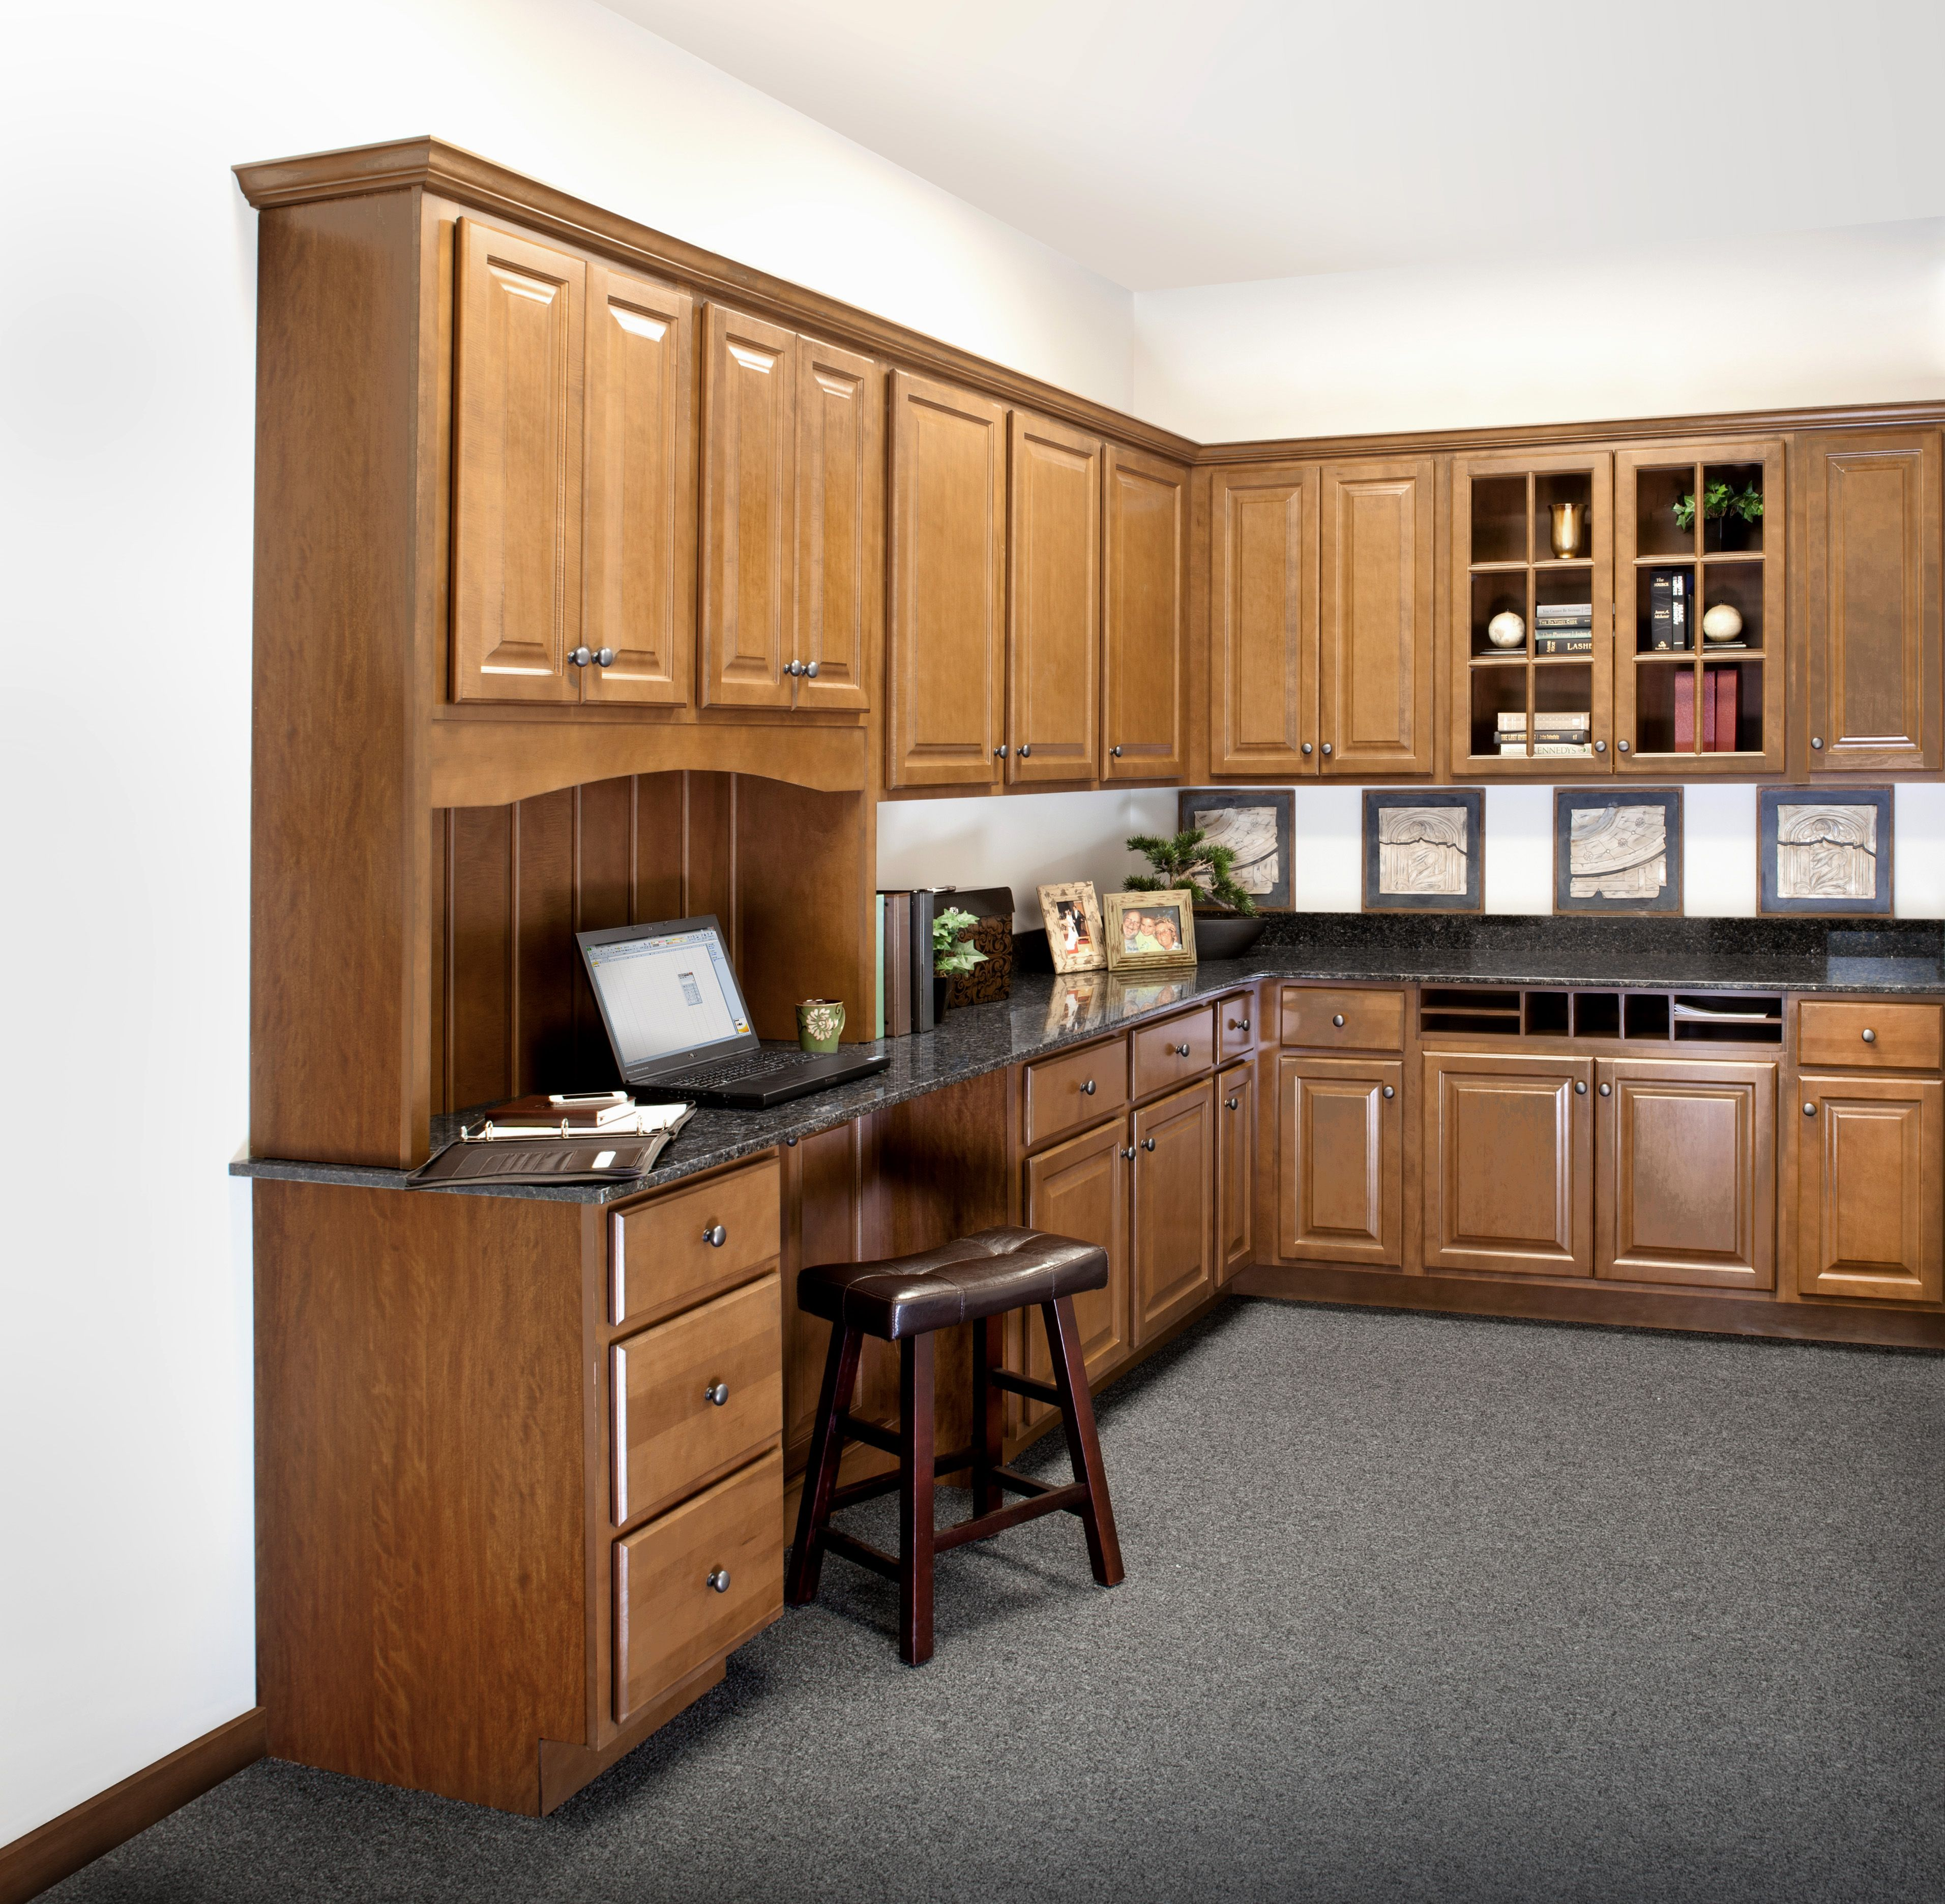 Wolf Classic Cabinets In Saginaw Make A Classic Office Space Kitchen Cabinets Classic Kitchen Cabinets Classic Kitchens